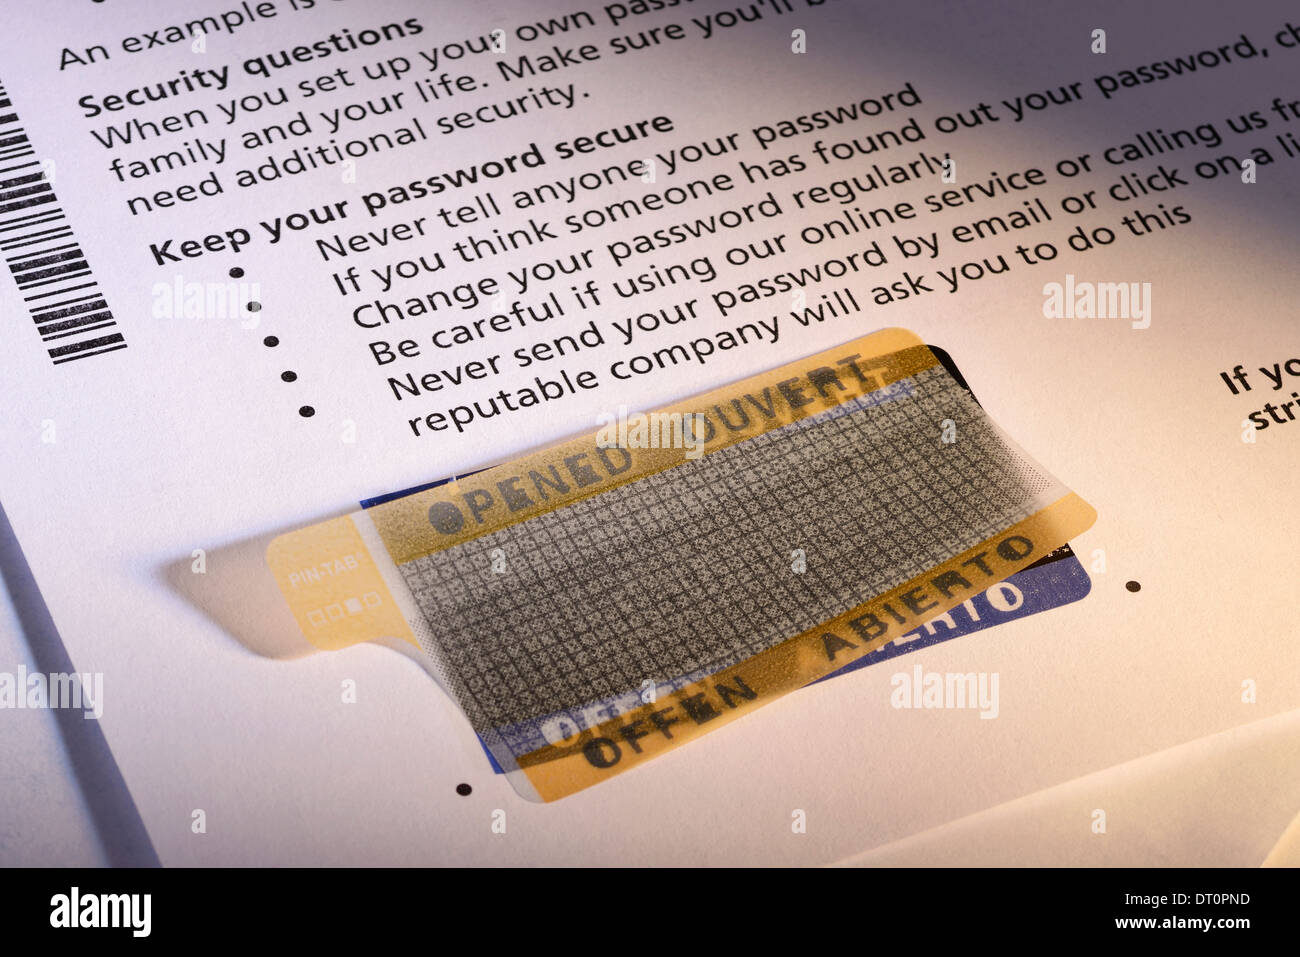 Tamper proof security label for a password on a bank letter Stock Photo